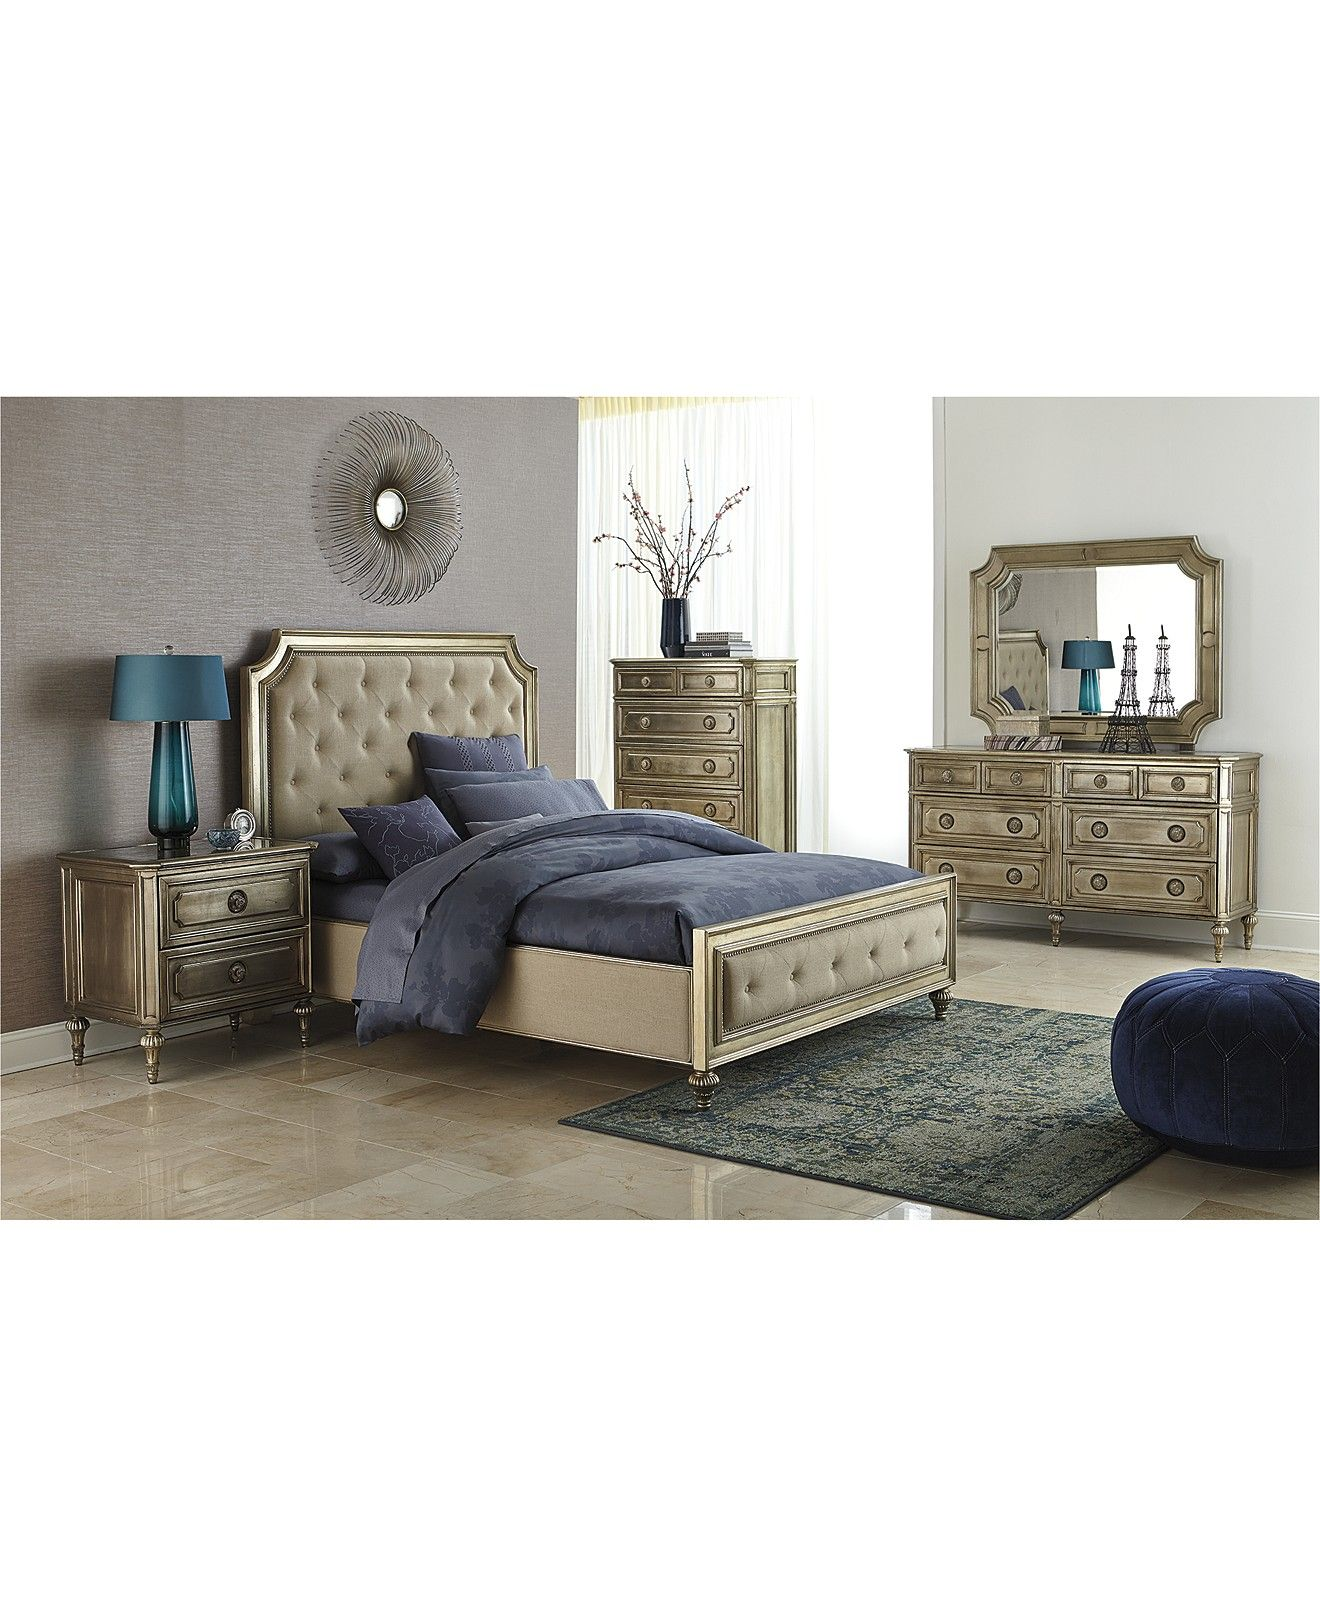 Queen Bedroom Furniture Sets Ember 3 Piece Queen Bedroom Furniture Set Only At Macys With